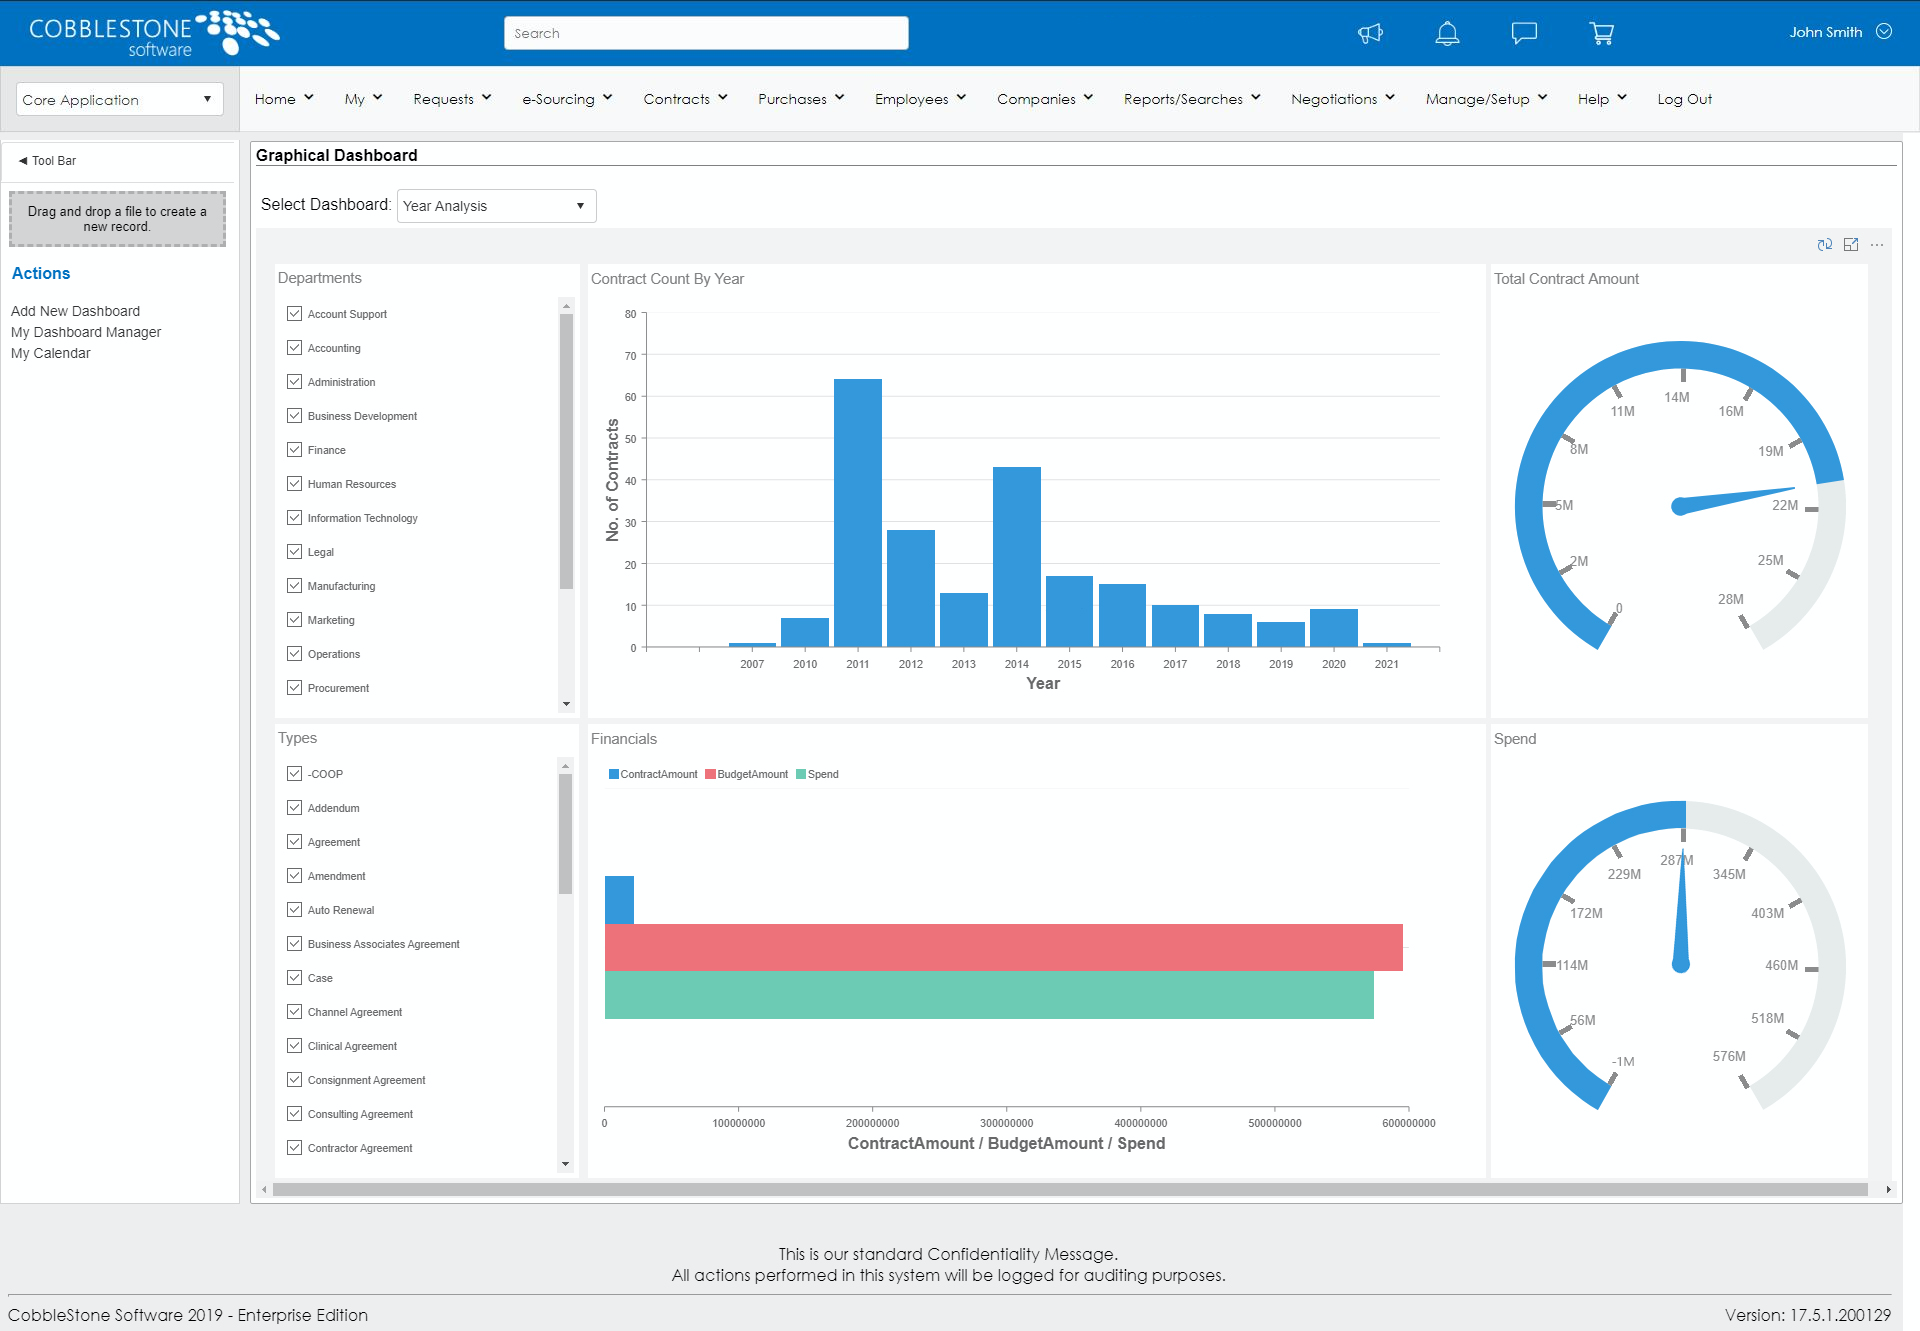 Easily track, manage, and analyze contracts with CobbleStone's Contract Insight®